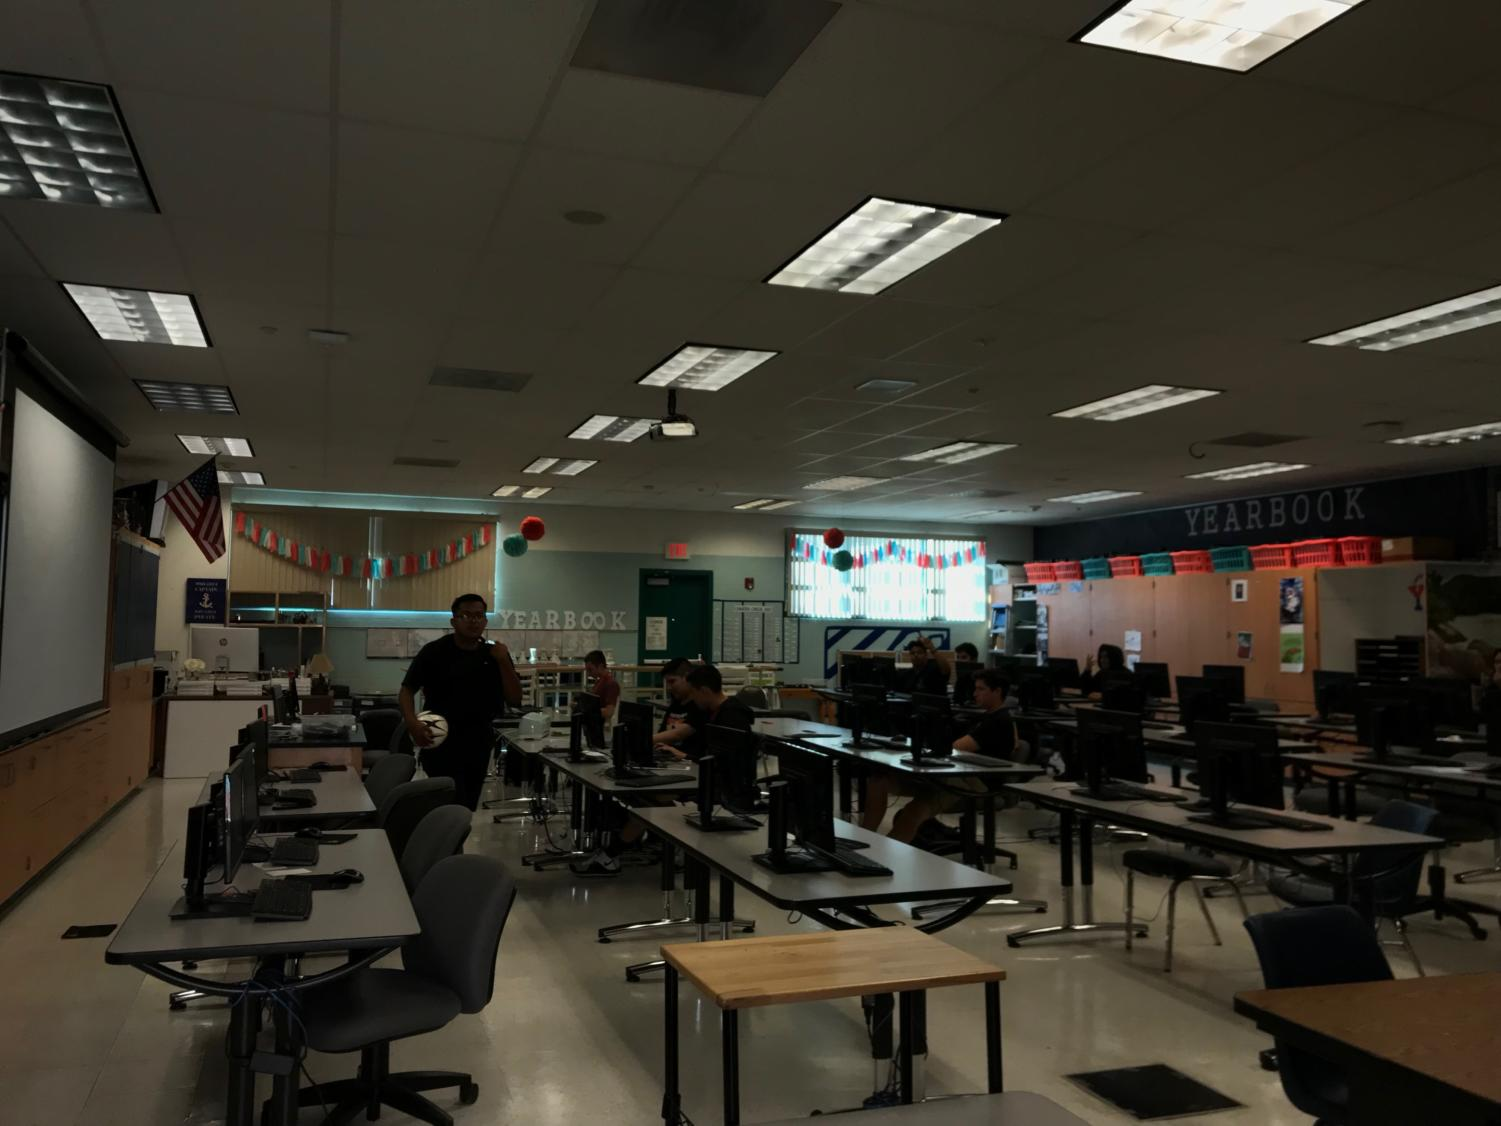 Pictured above: The ERHS Yearbook room.